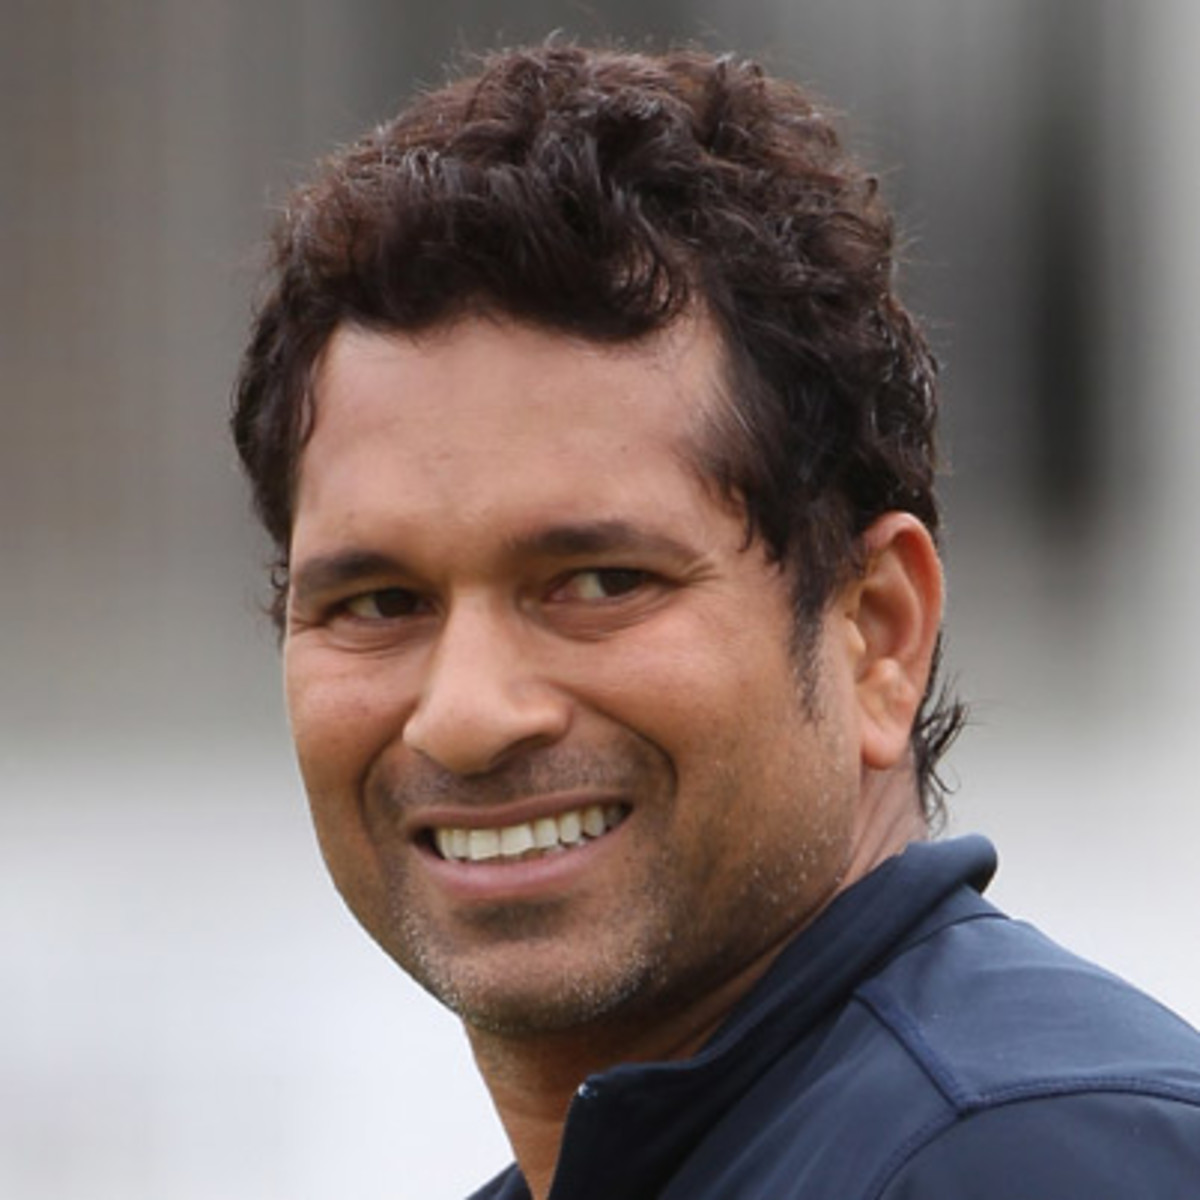 life of sachin tendulkar Sachin a billion dreams, which features india's biggest ever sports icon, sachin tendulkar, will release today here's an exclusive chat with the master blaster.